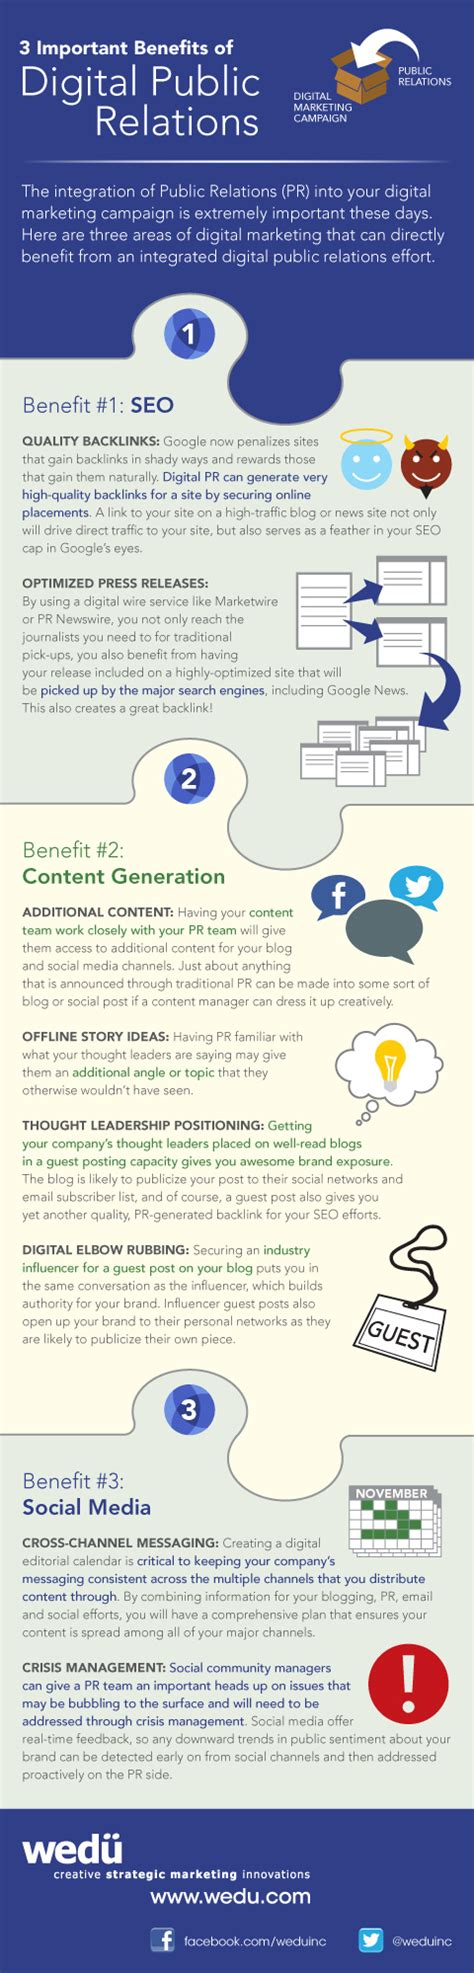 by the numbers 400 amazing facebook statistics dmr 3 important benefits of digital public relations